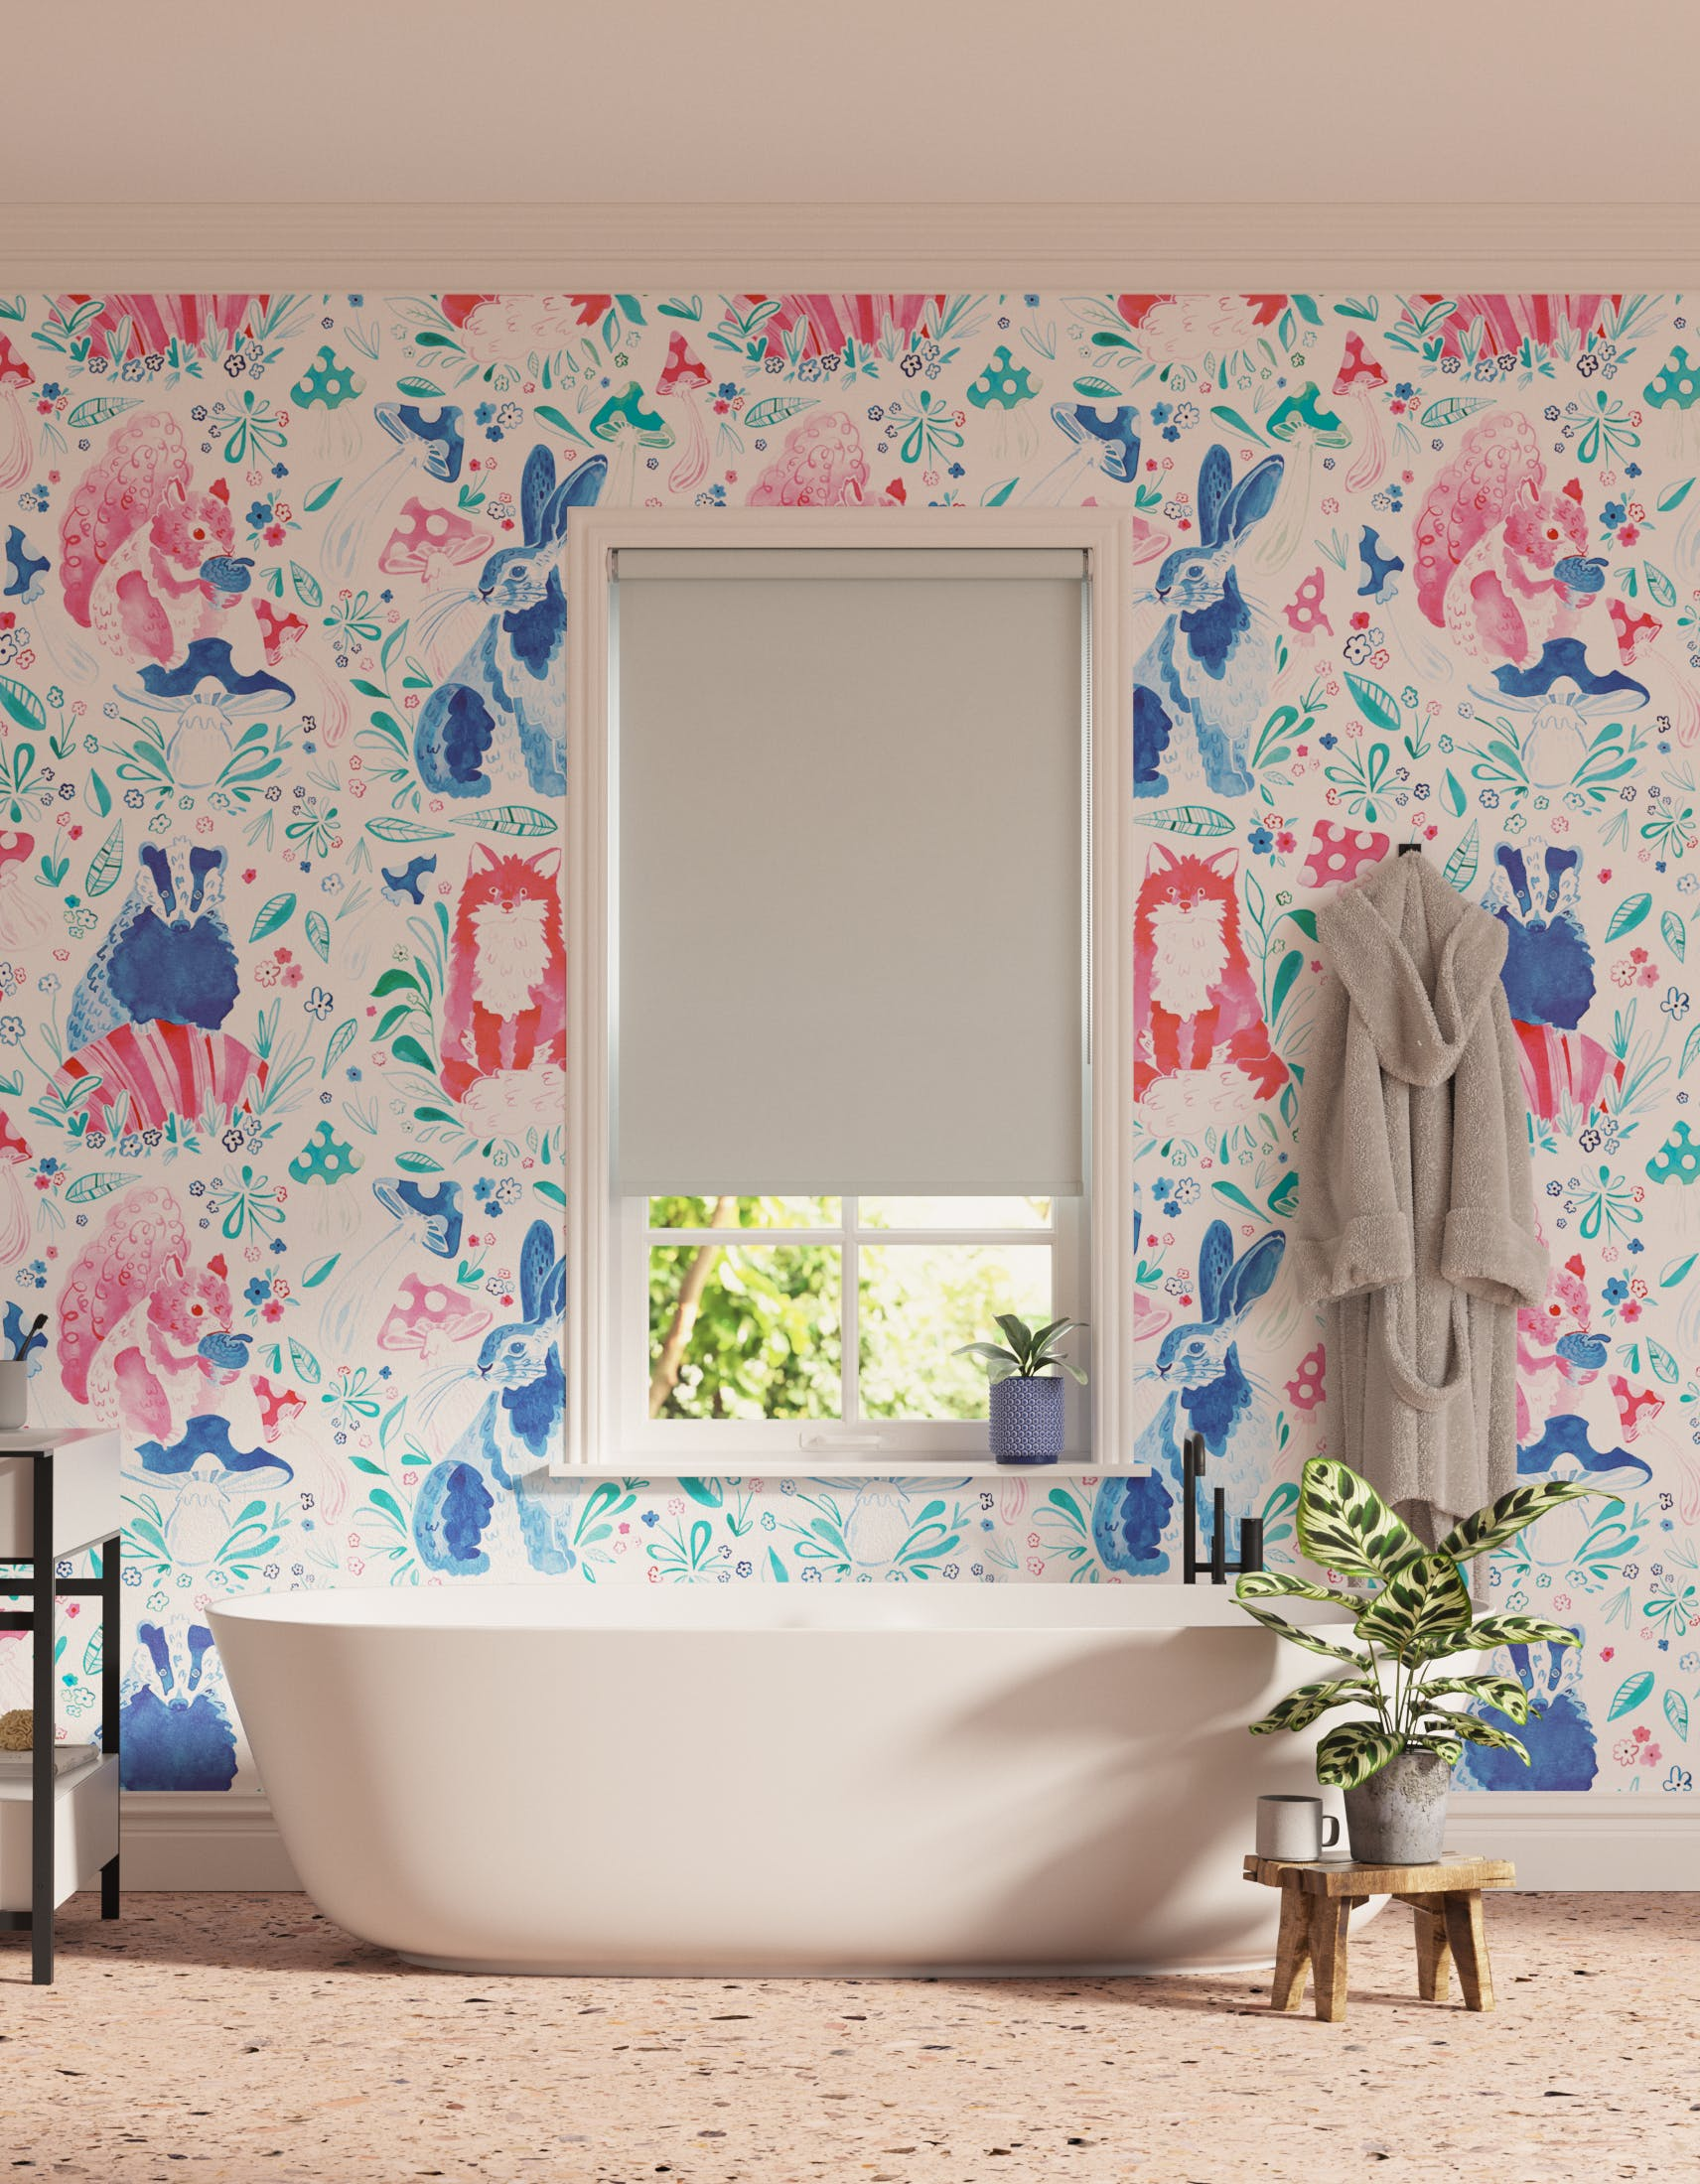 Bathroom decorated with Lick x Franki Barber Woodland Animals 01 pink and blue children's wallpaper